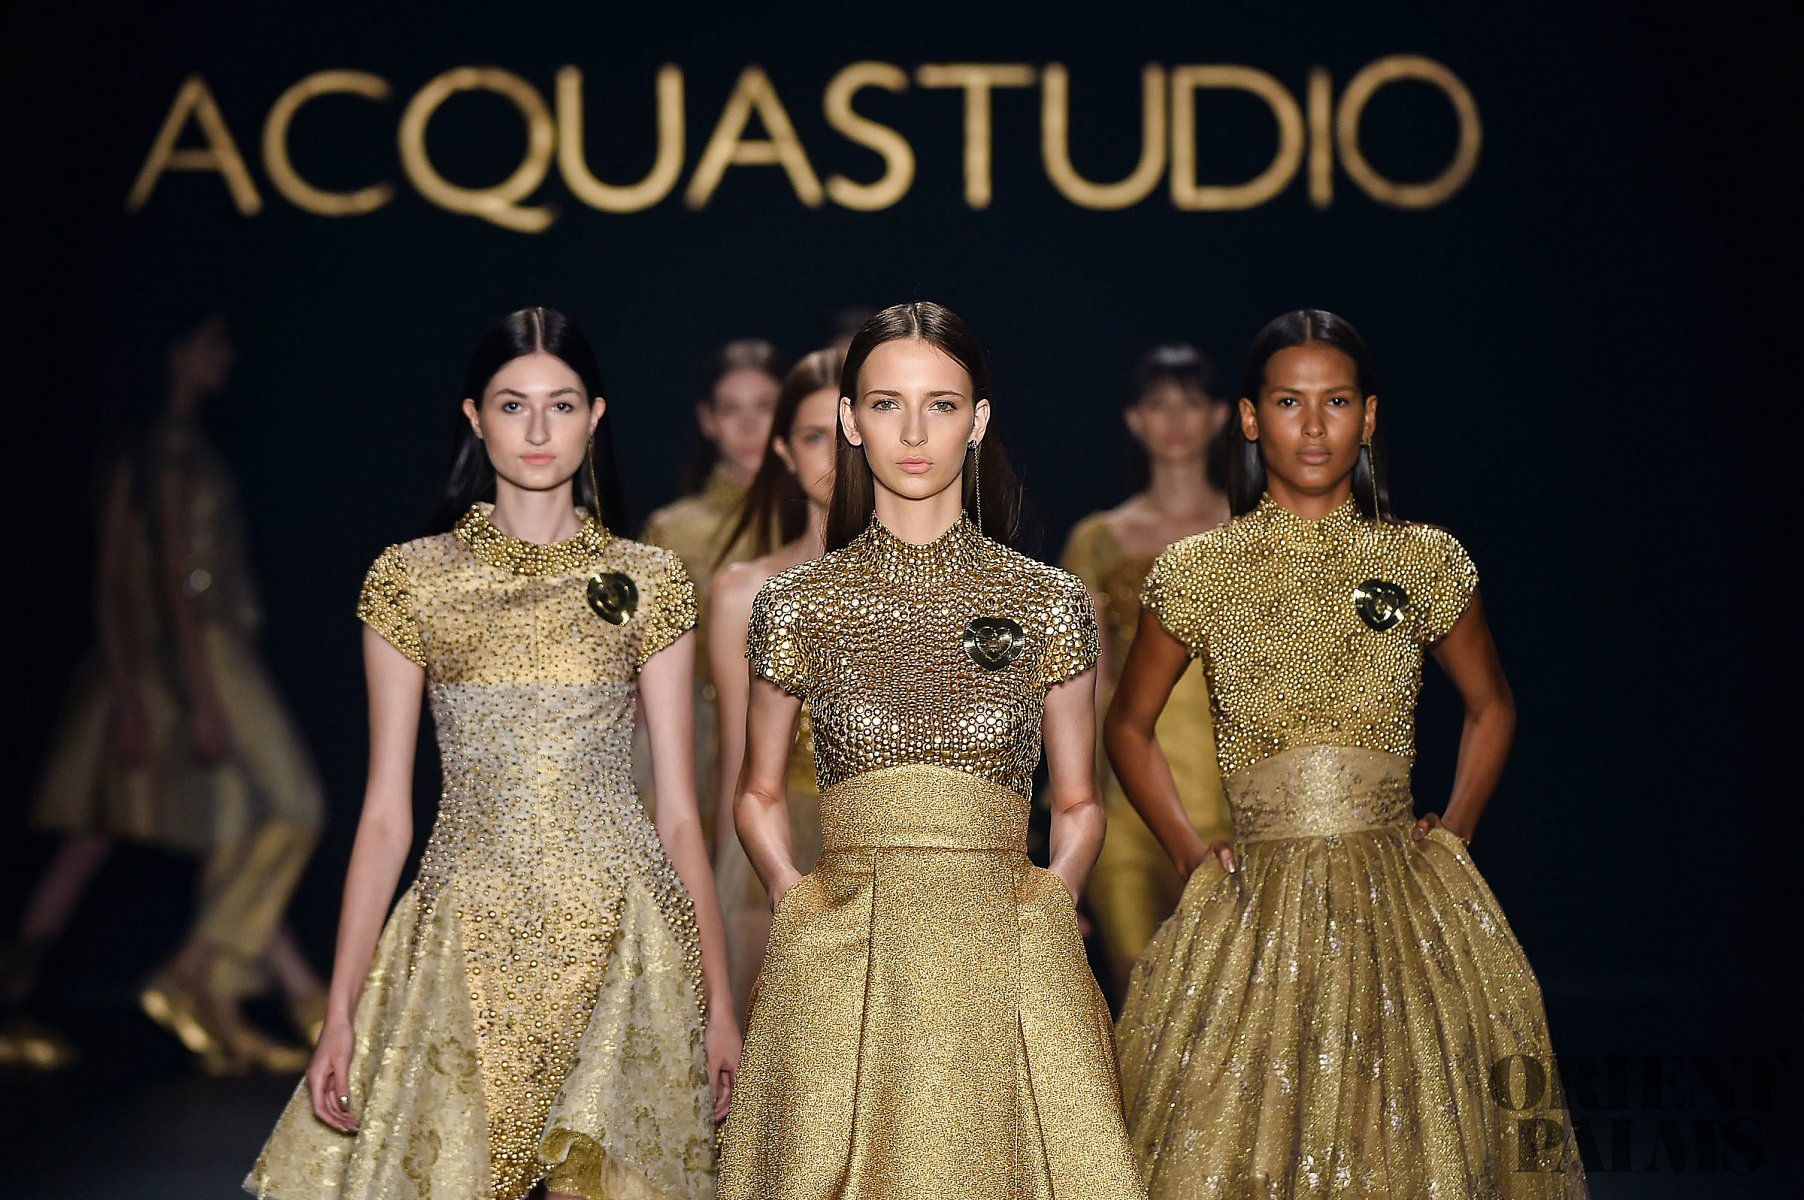 Acquastudio Herfst/Winter 2015-2016 - Confectie - 22